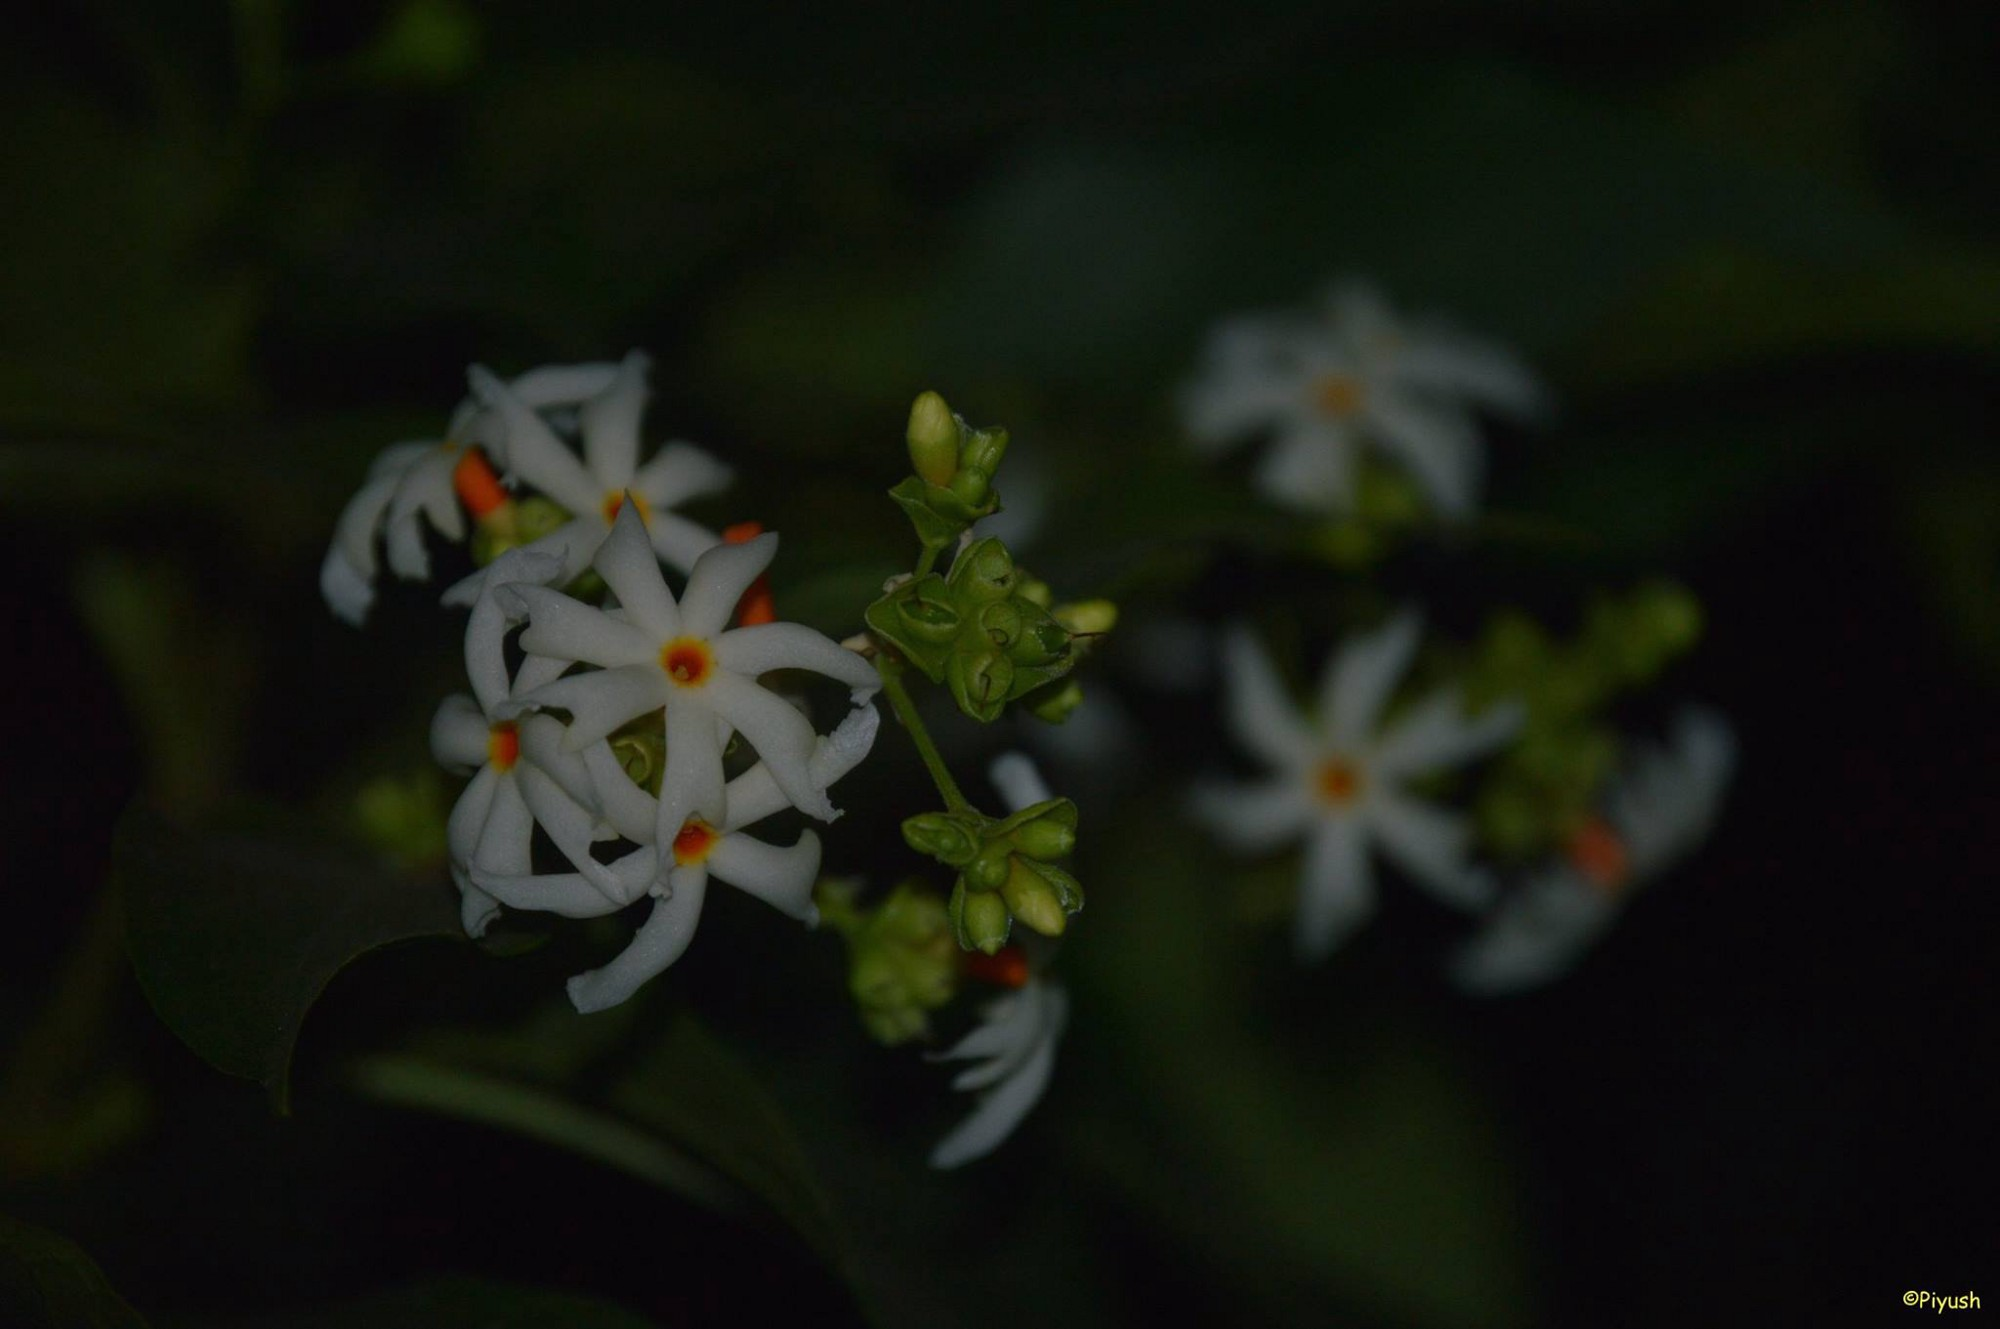 Why Ganga Siuli Called Tree Of Sorrow And Queen Of The Night